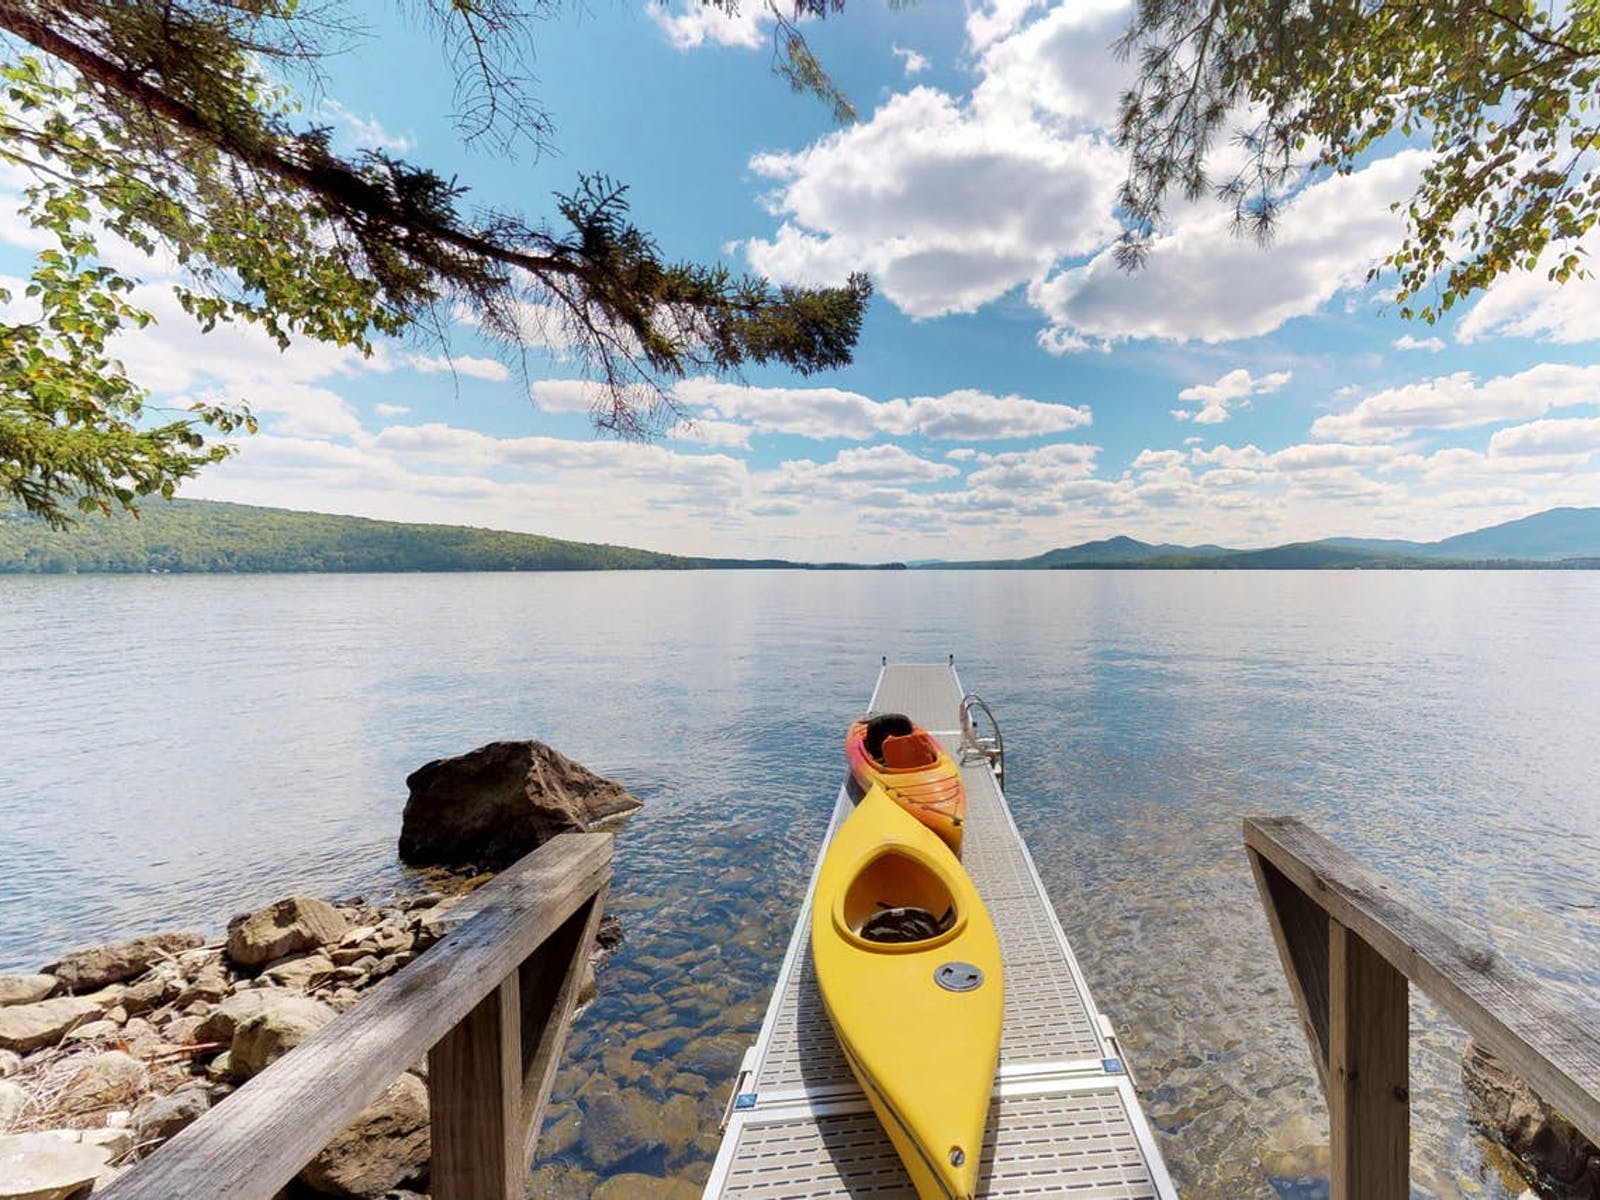 Vacation rental dock with kayaks extending over lake